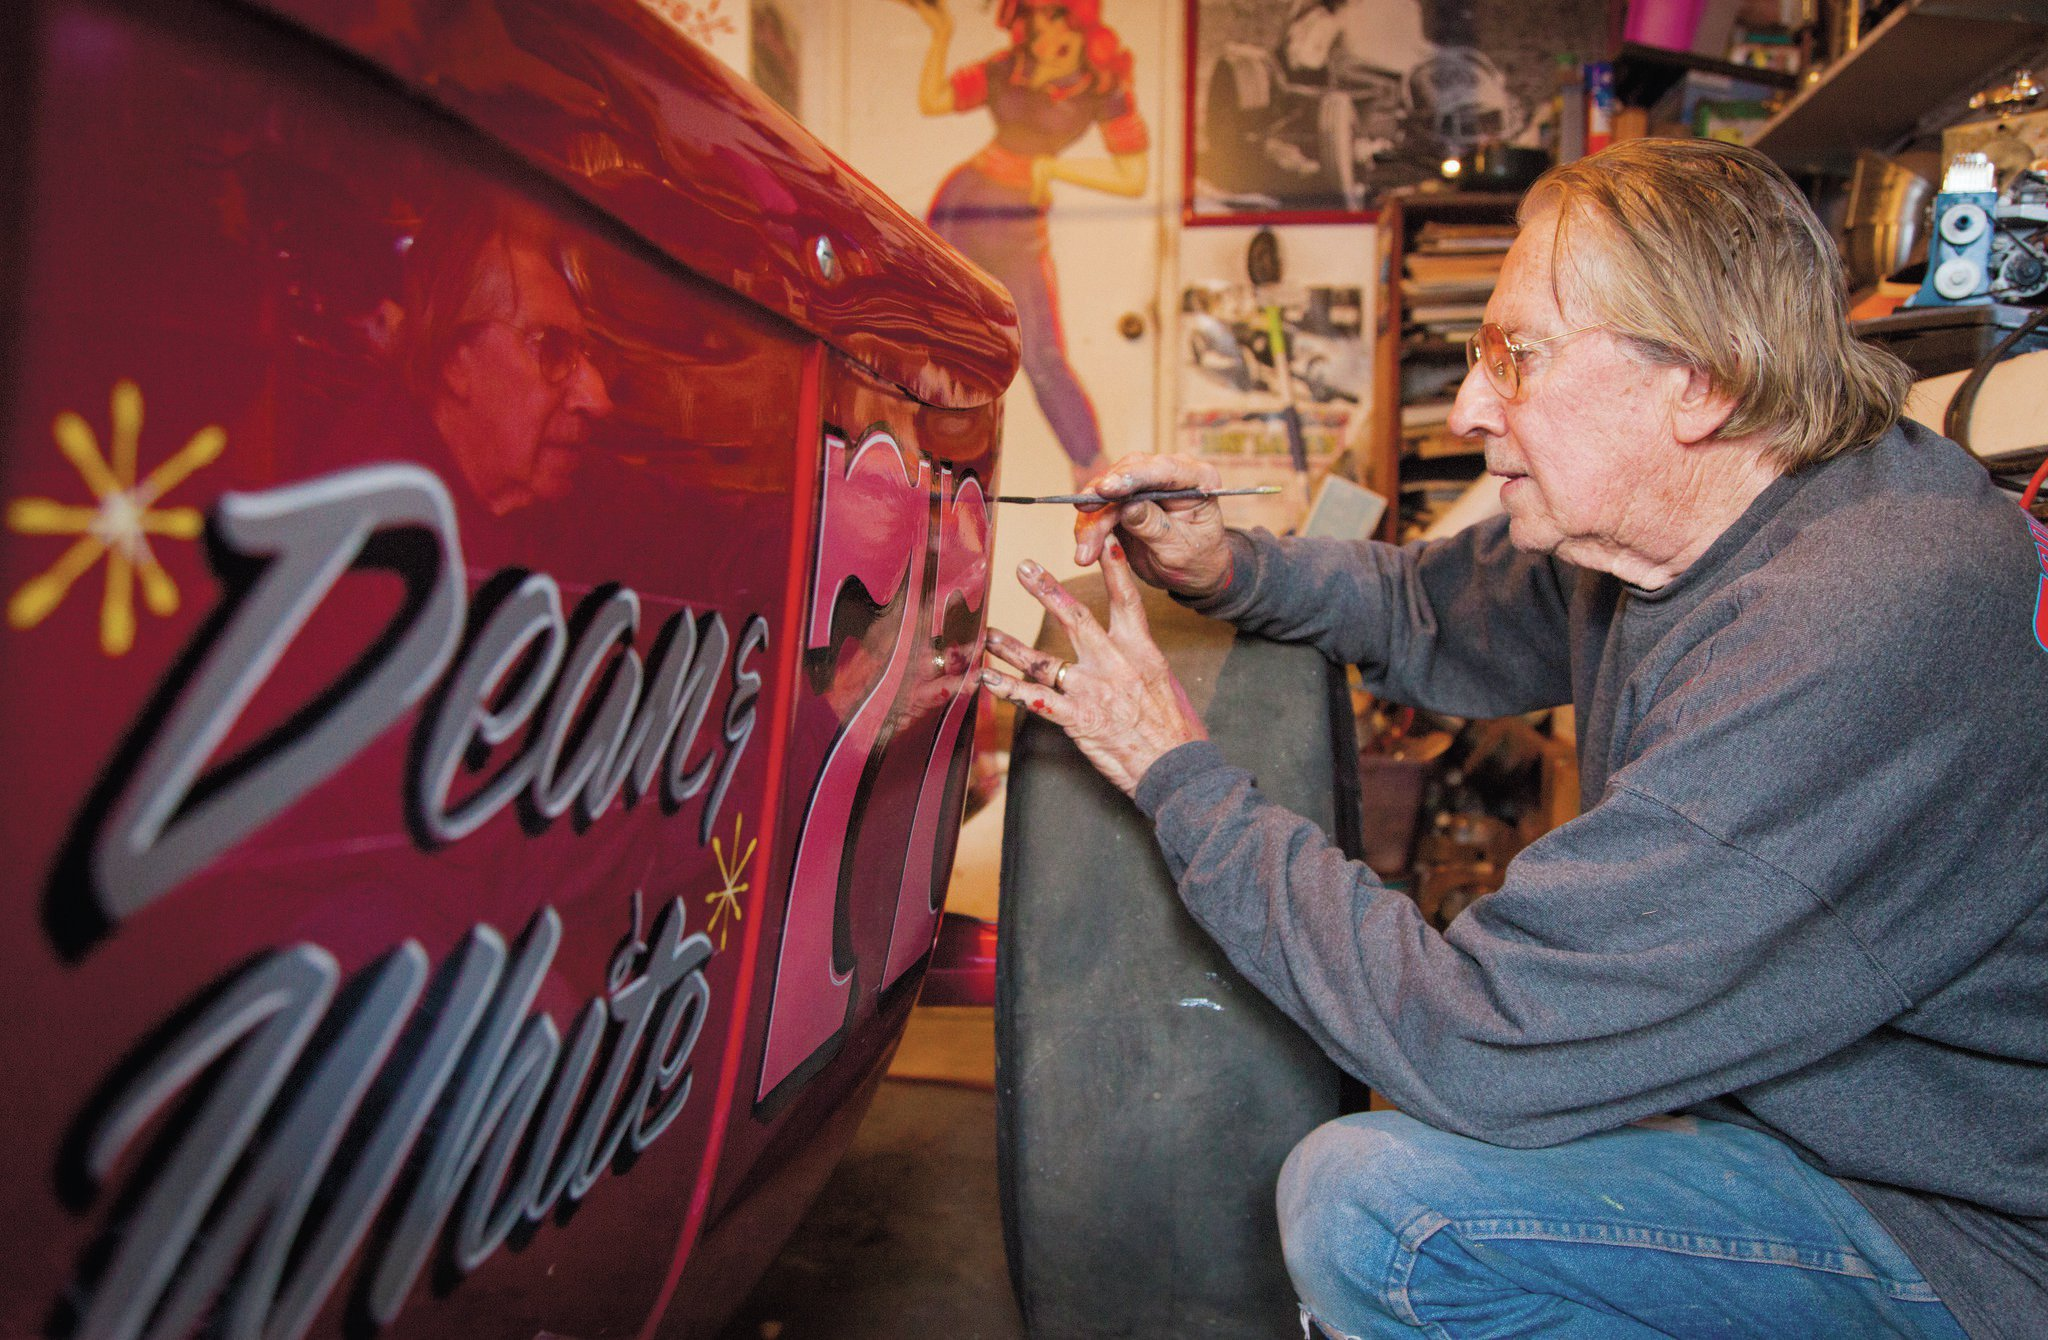 Racer, fine artist, and striper Bob McCoy came out of retirement to letter and stripe the bucket—just as he had done in the '60s. Sadly, he passed away in September, making this the last car he lettered.